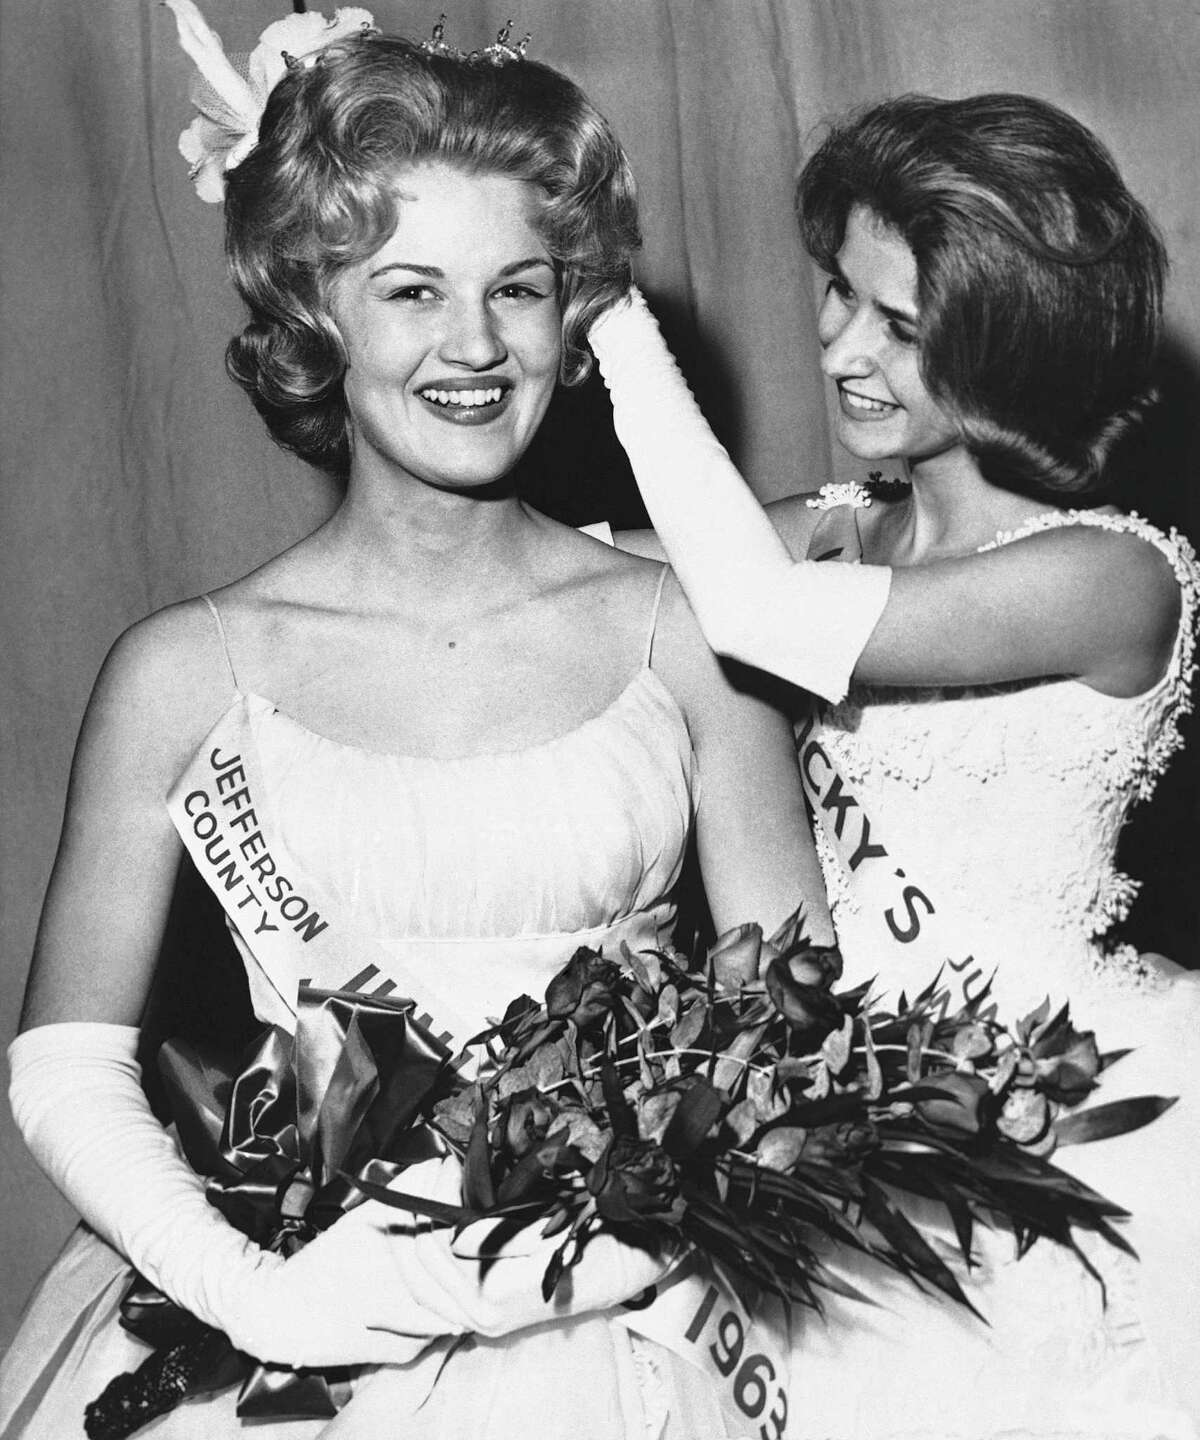 Diane Sawyer, left, was 17 when she won Kentucky's Junior Miss pageant in 1963. Sawyer went on to win the national Junior Miss contest.